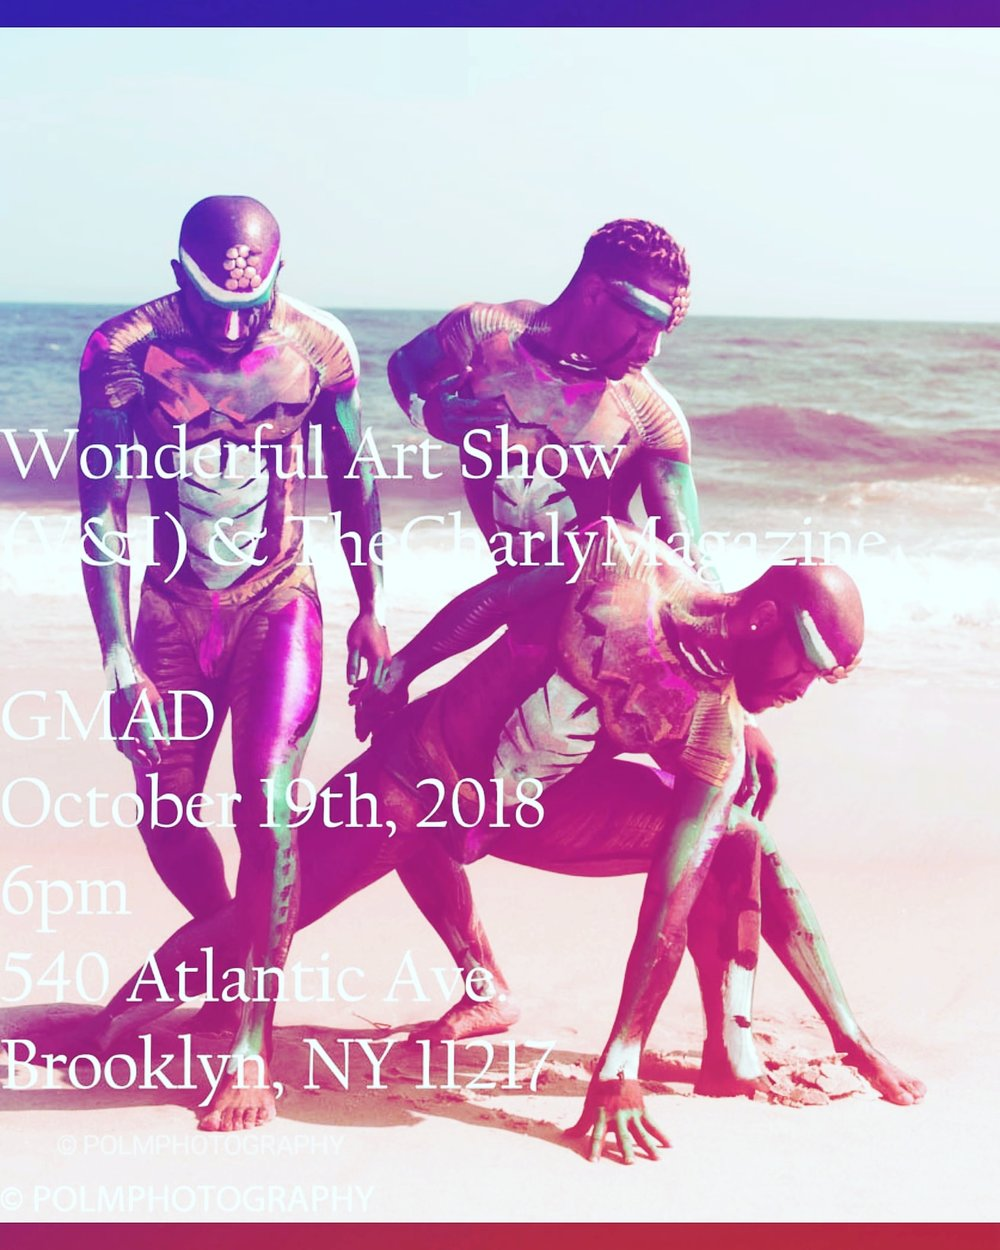 Get your tickets here  https://wonderfulartshow.eventbrite.com